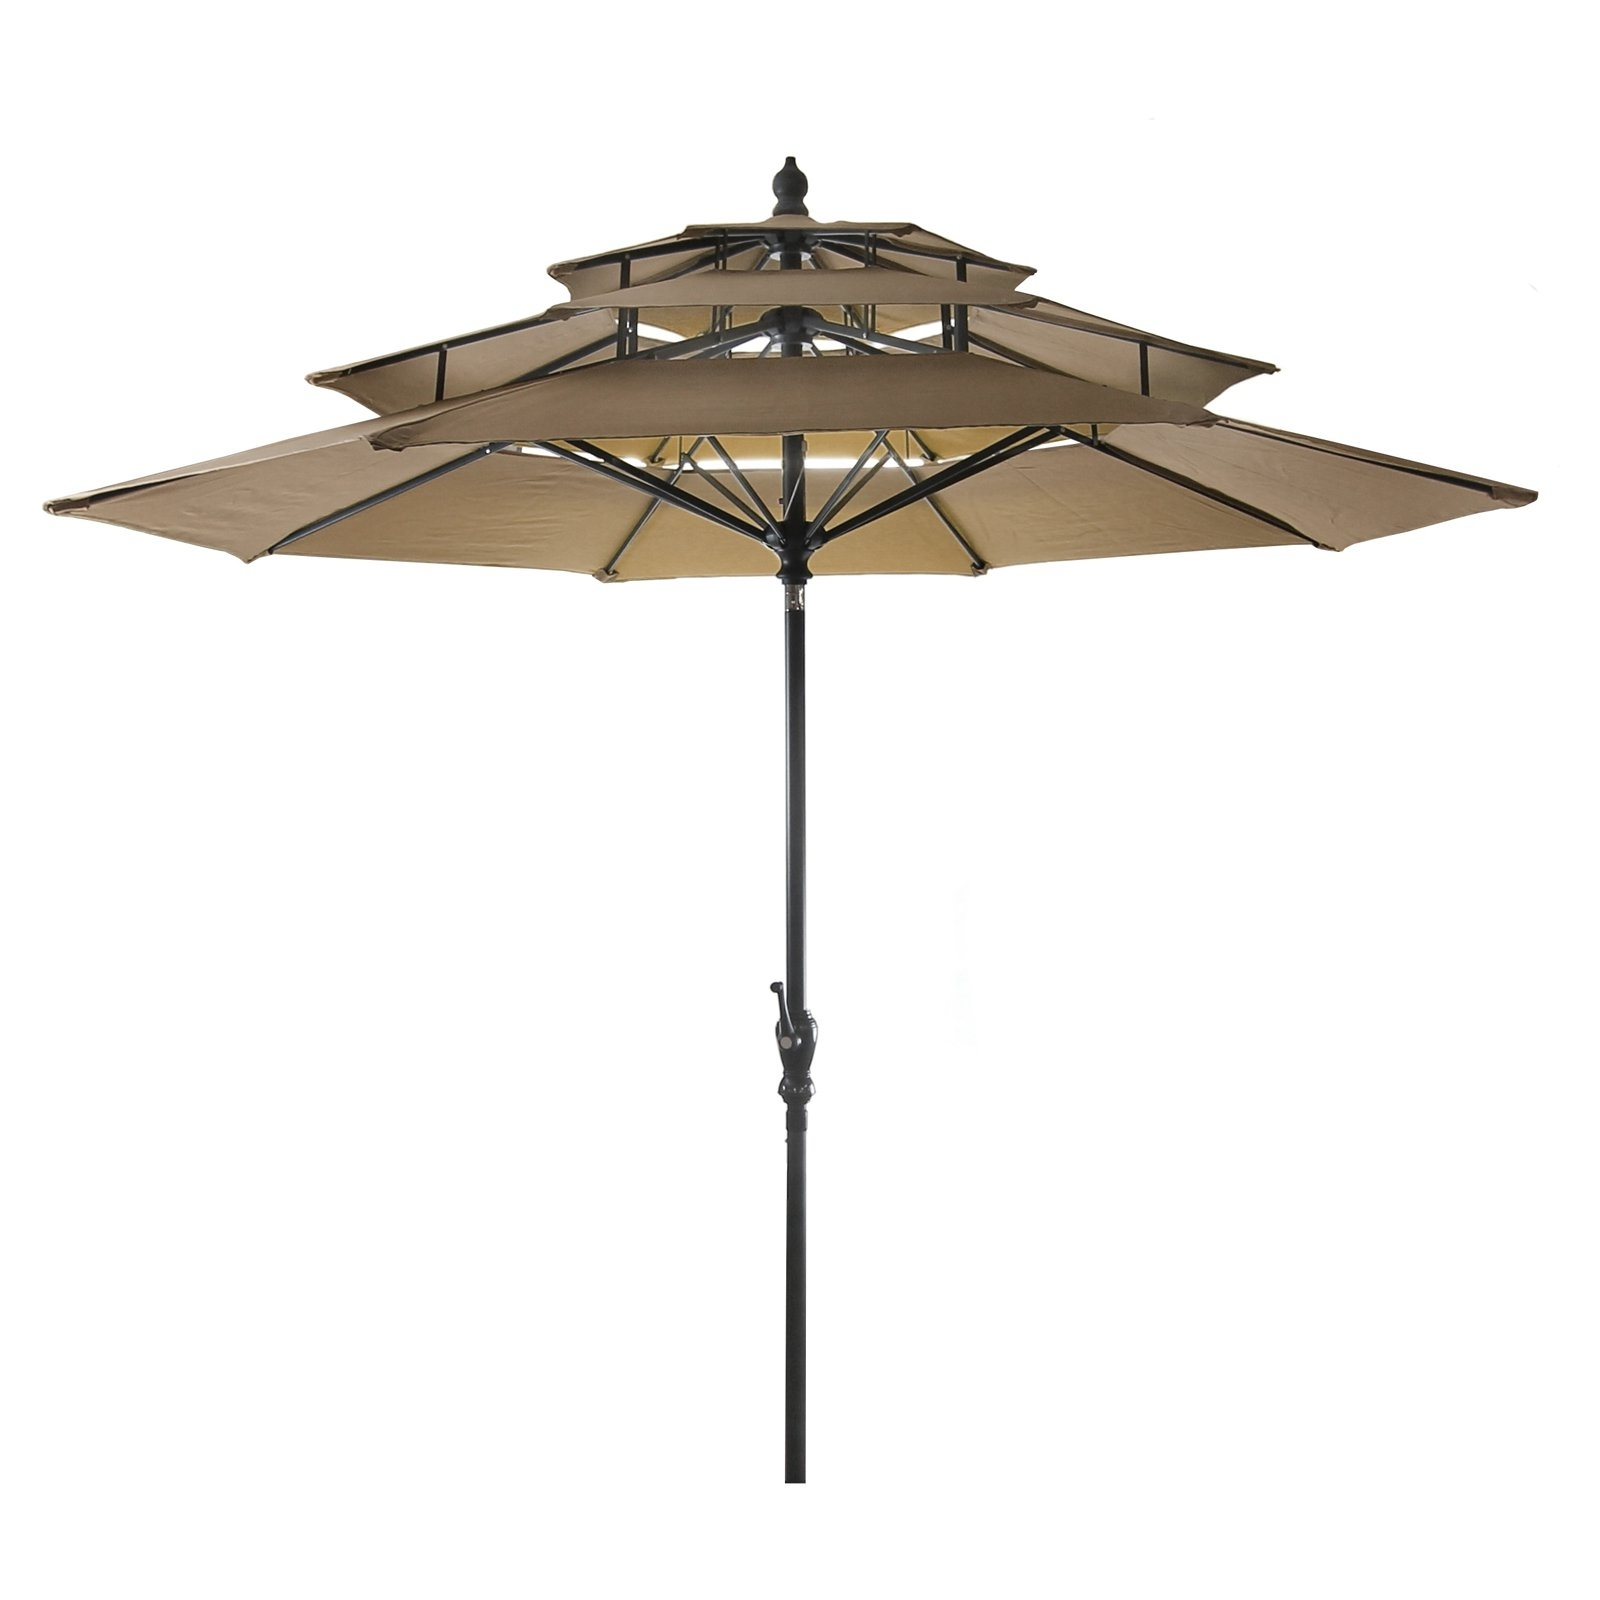 Recent Jordan Patio Umbrellas Throughout Jordan Manufacturing 9' 3 Tier Umbrella – Walmart (Gallery 8 of 20)